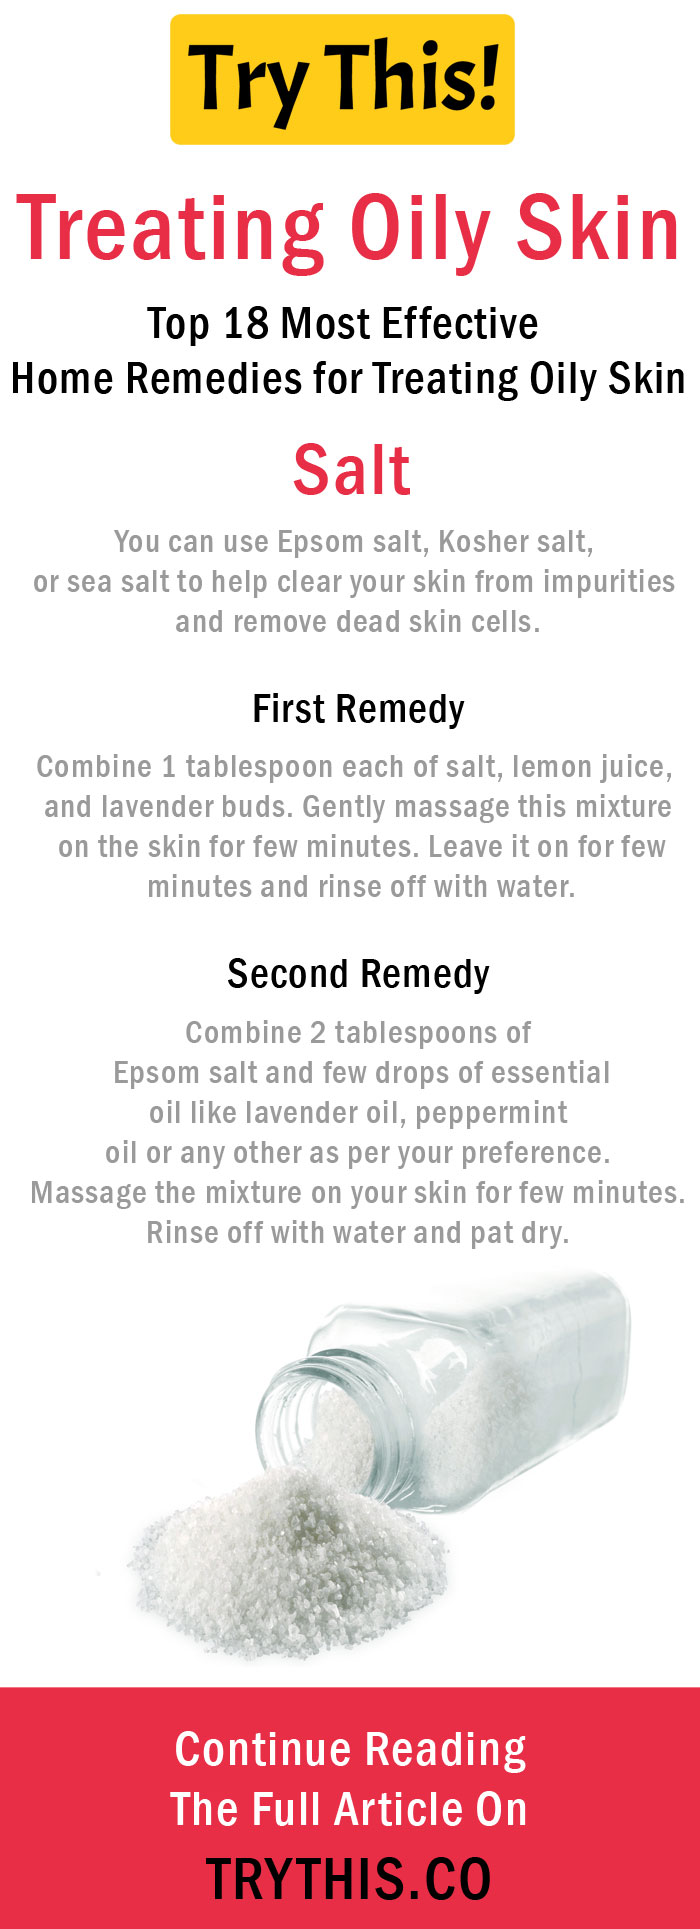 Home Remedies for Treating Oily Skin - Salt